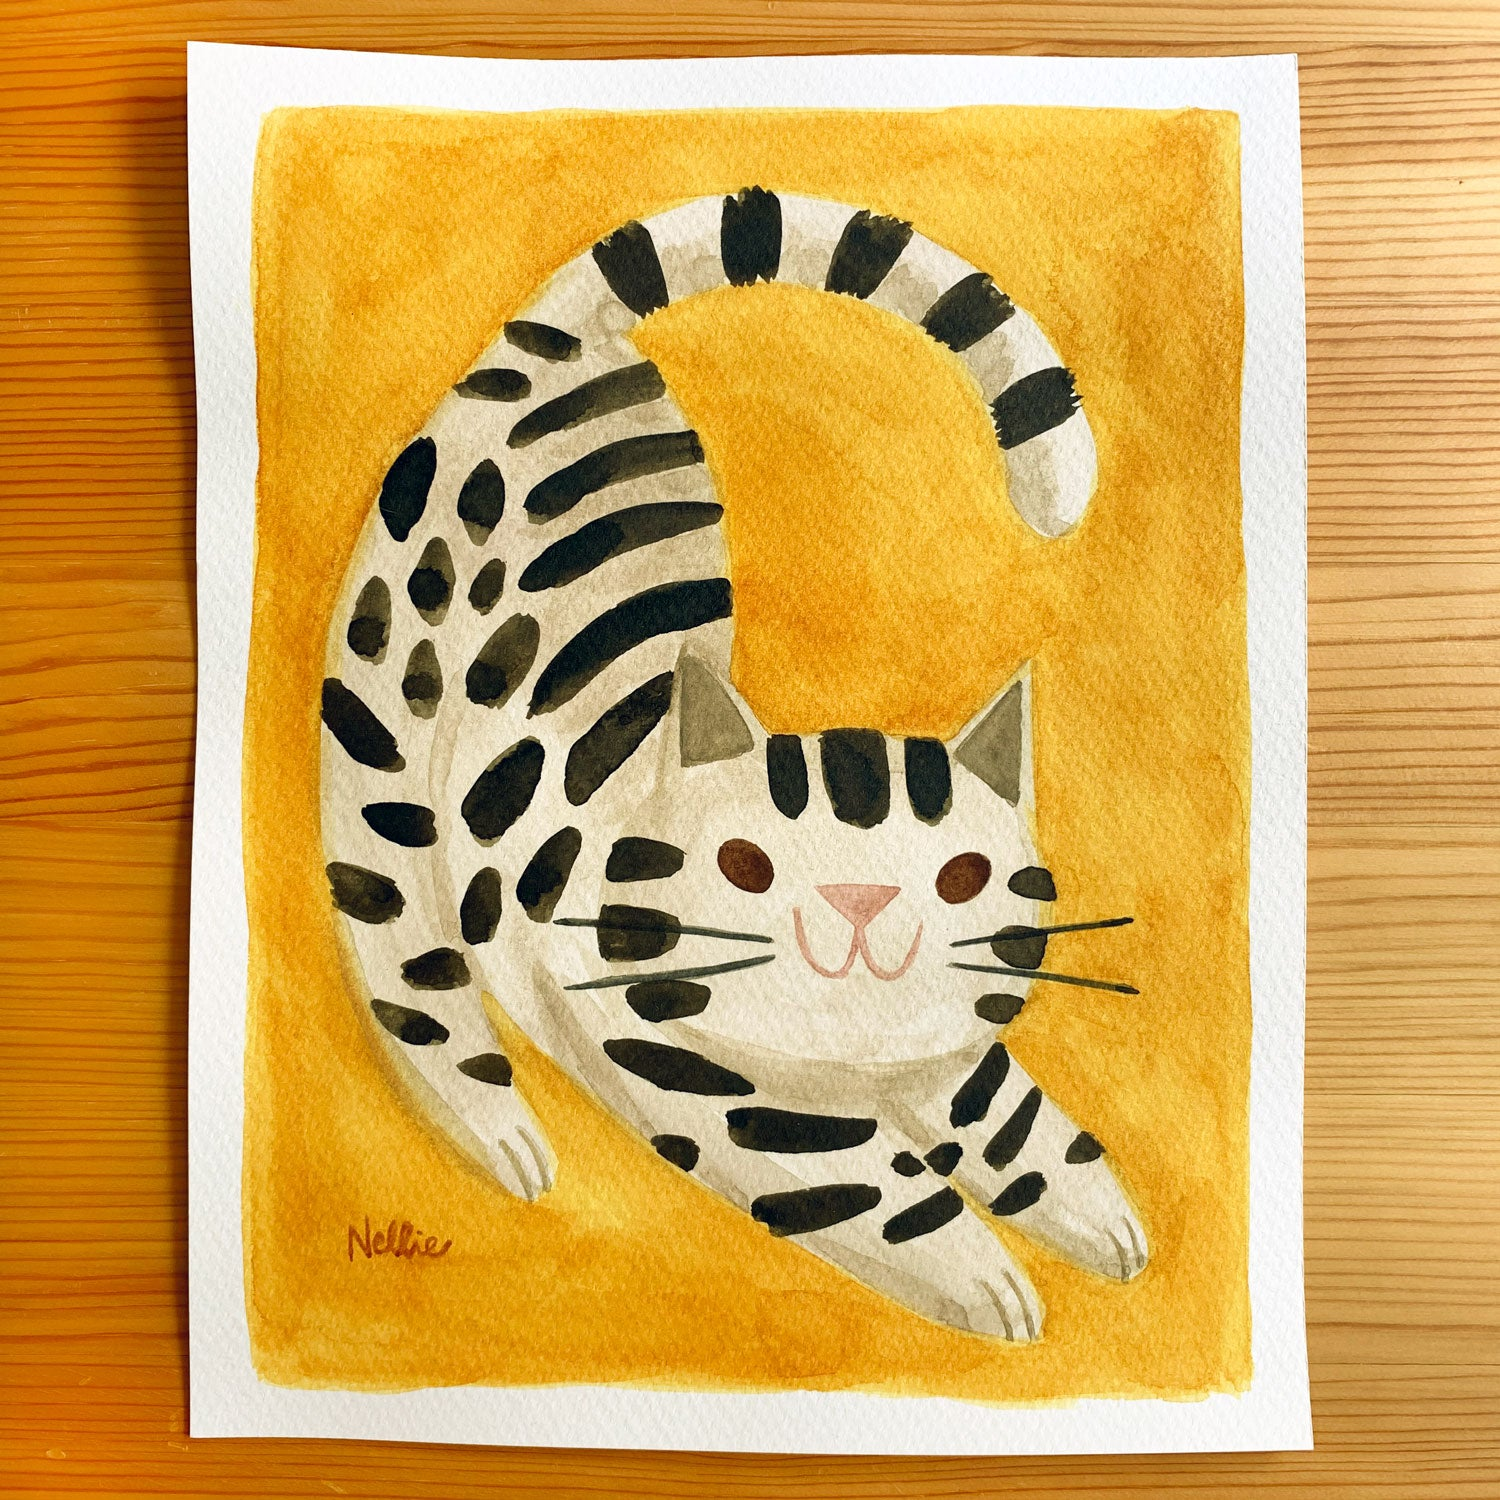 Ready To Pounce - Original Painting